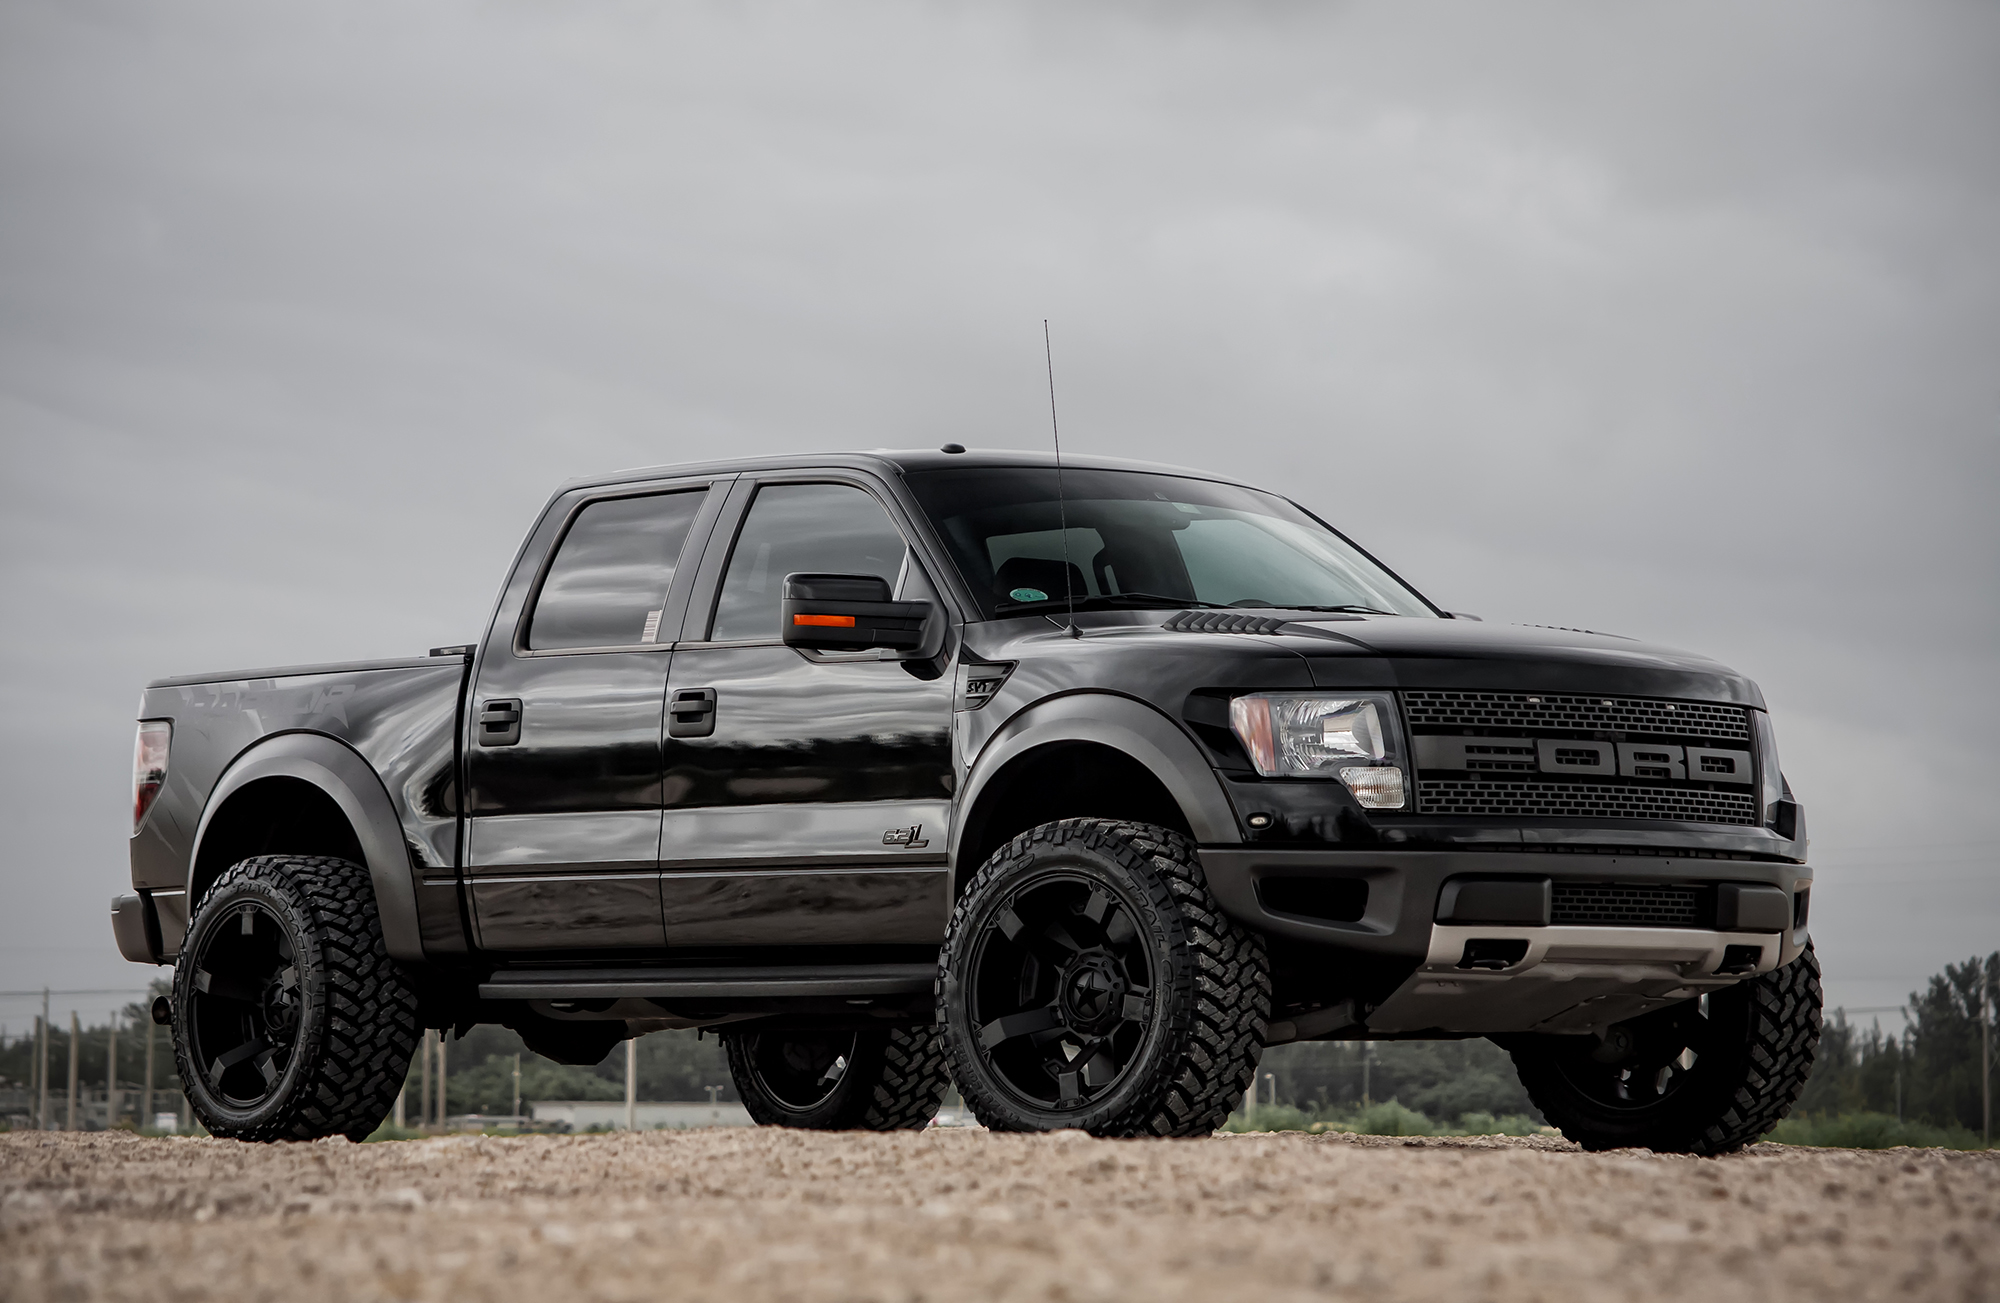 Ford F 150 2015 Raptor 2015 Ford Raptor SVT Black Custom HD Wallpaper 2000x1303